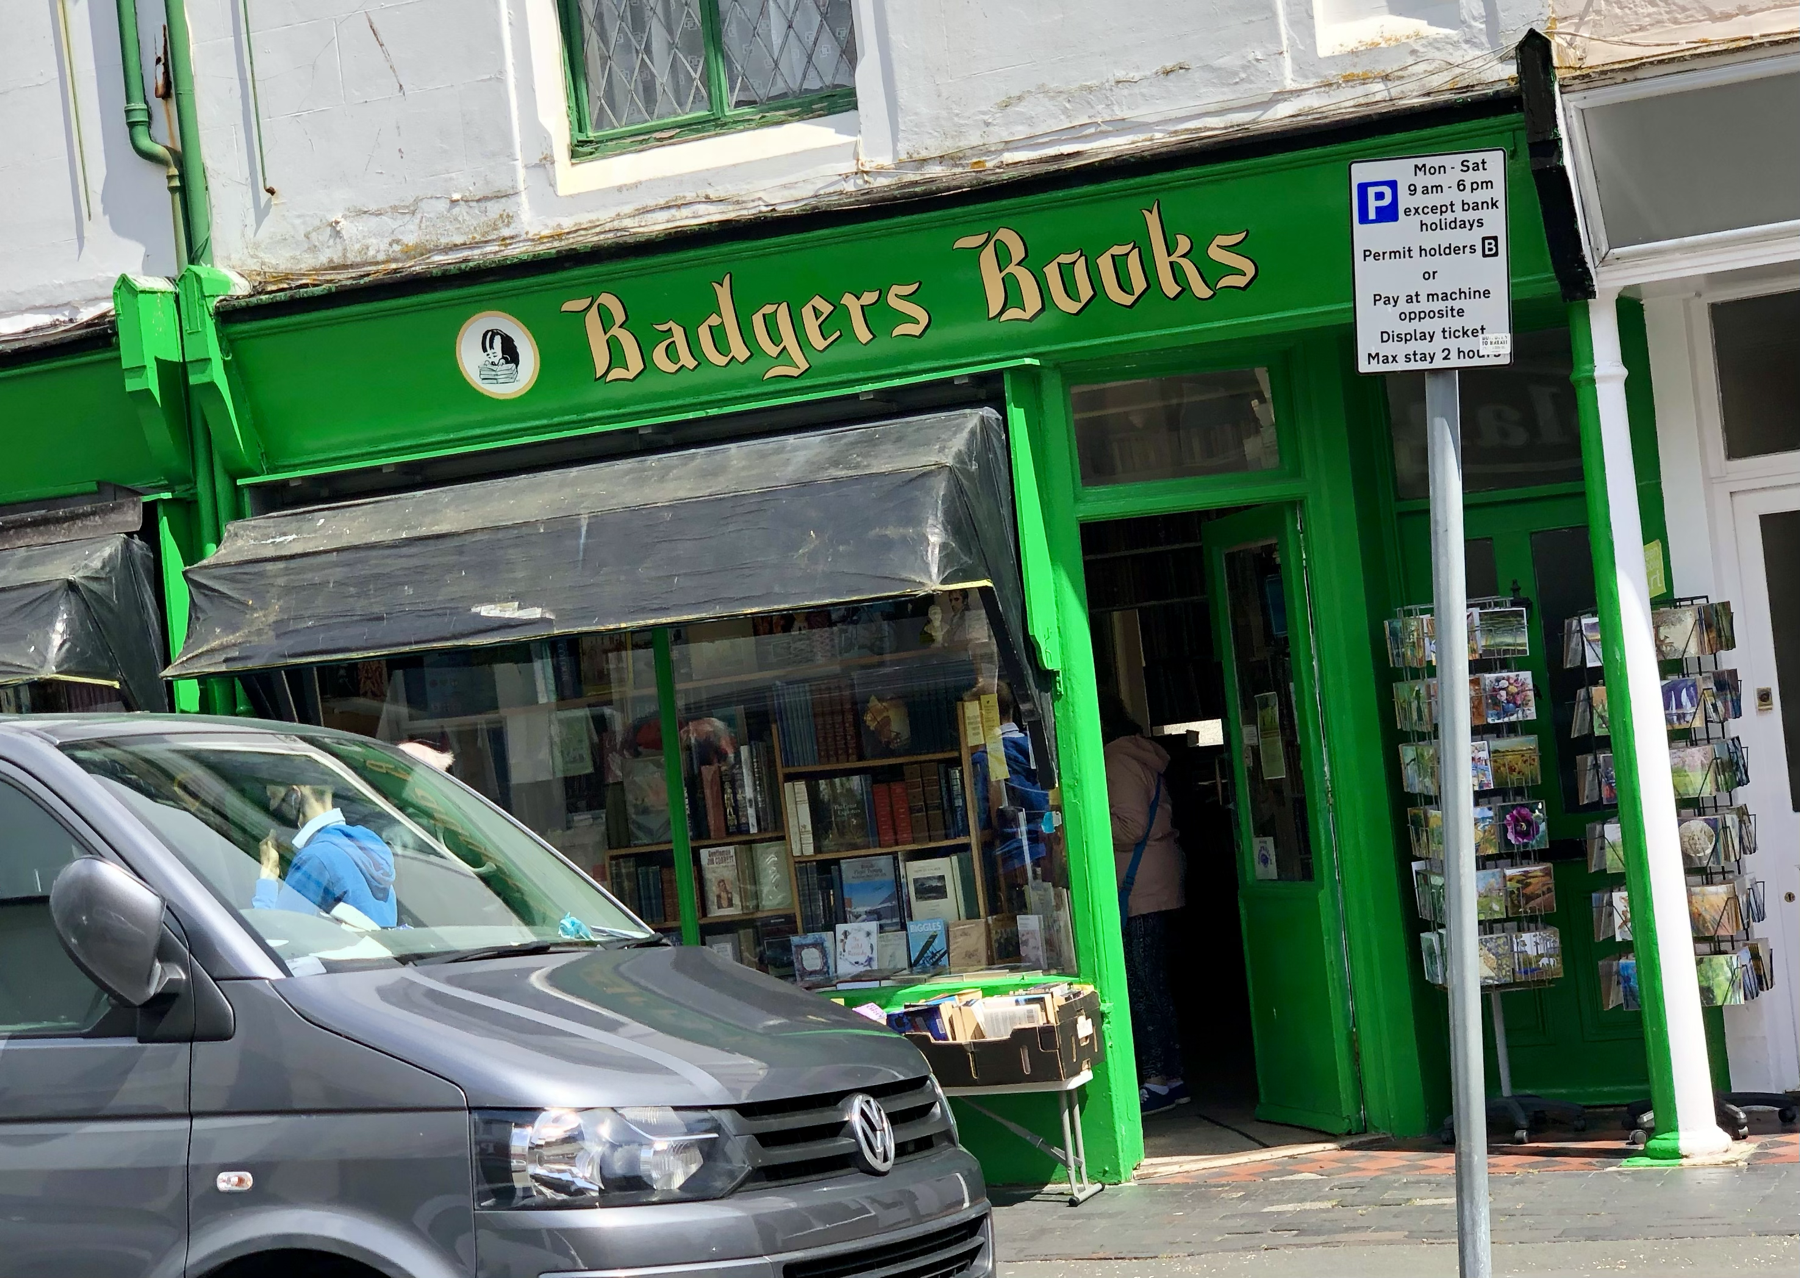 Badgers Books in Worthing